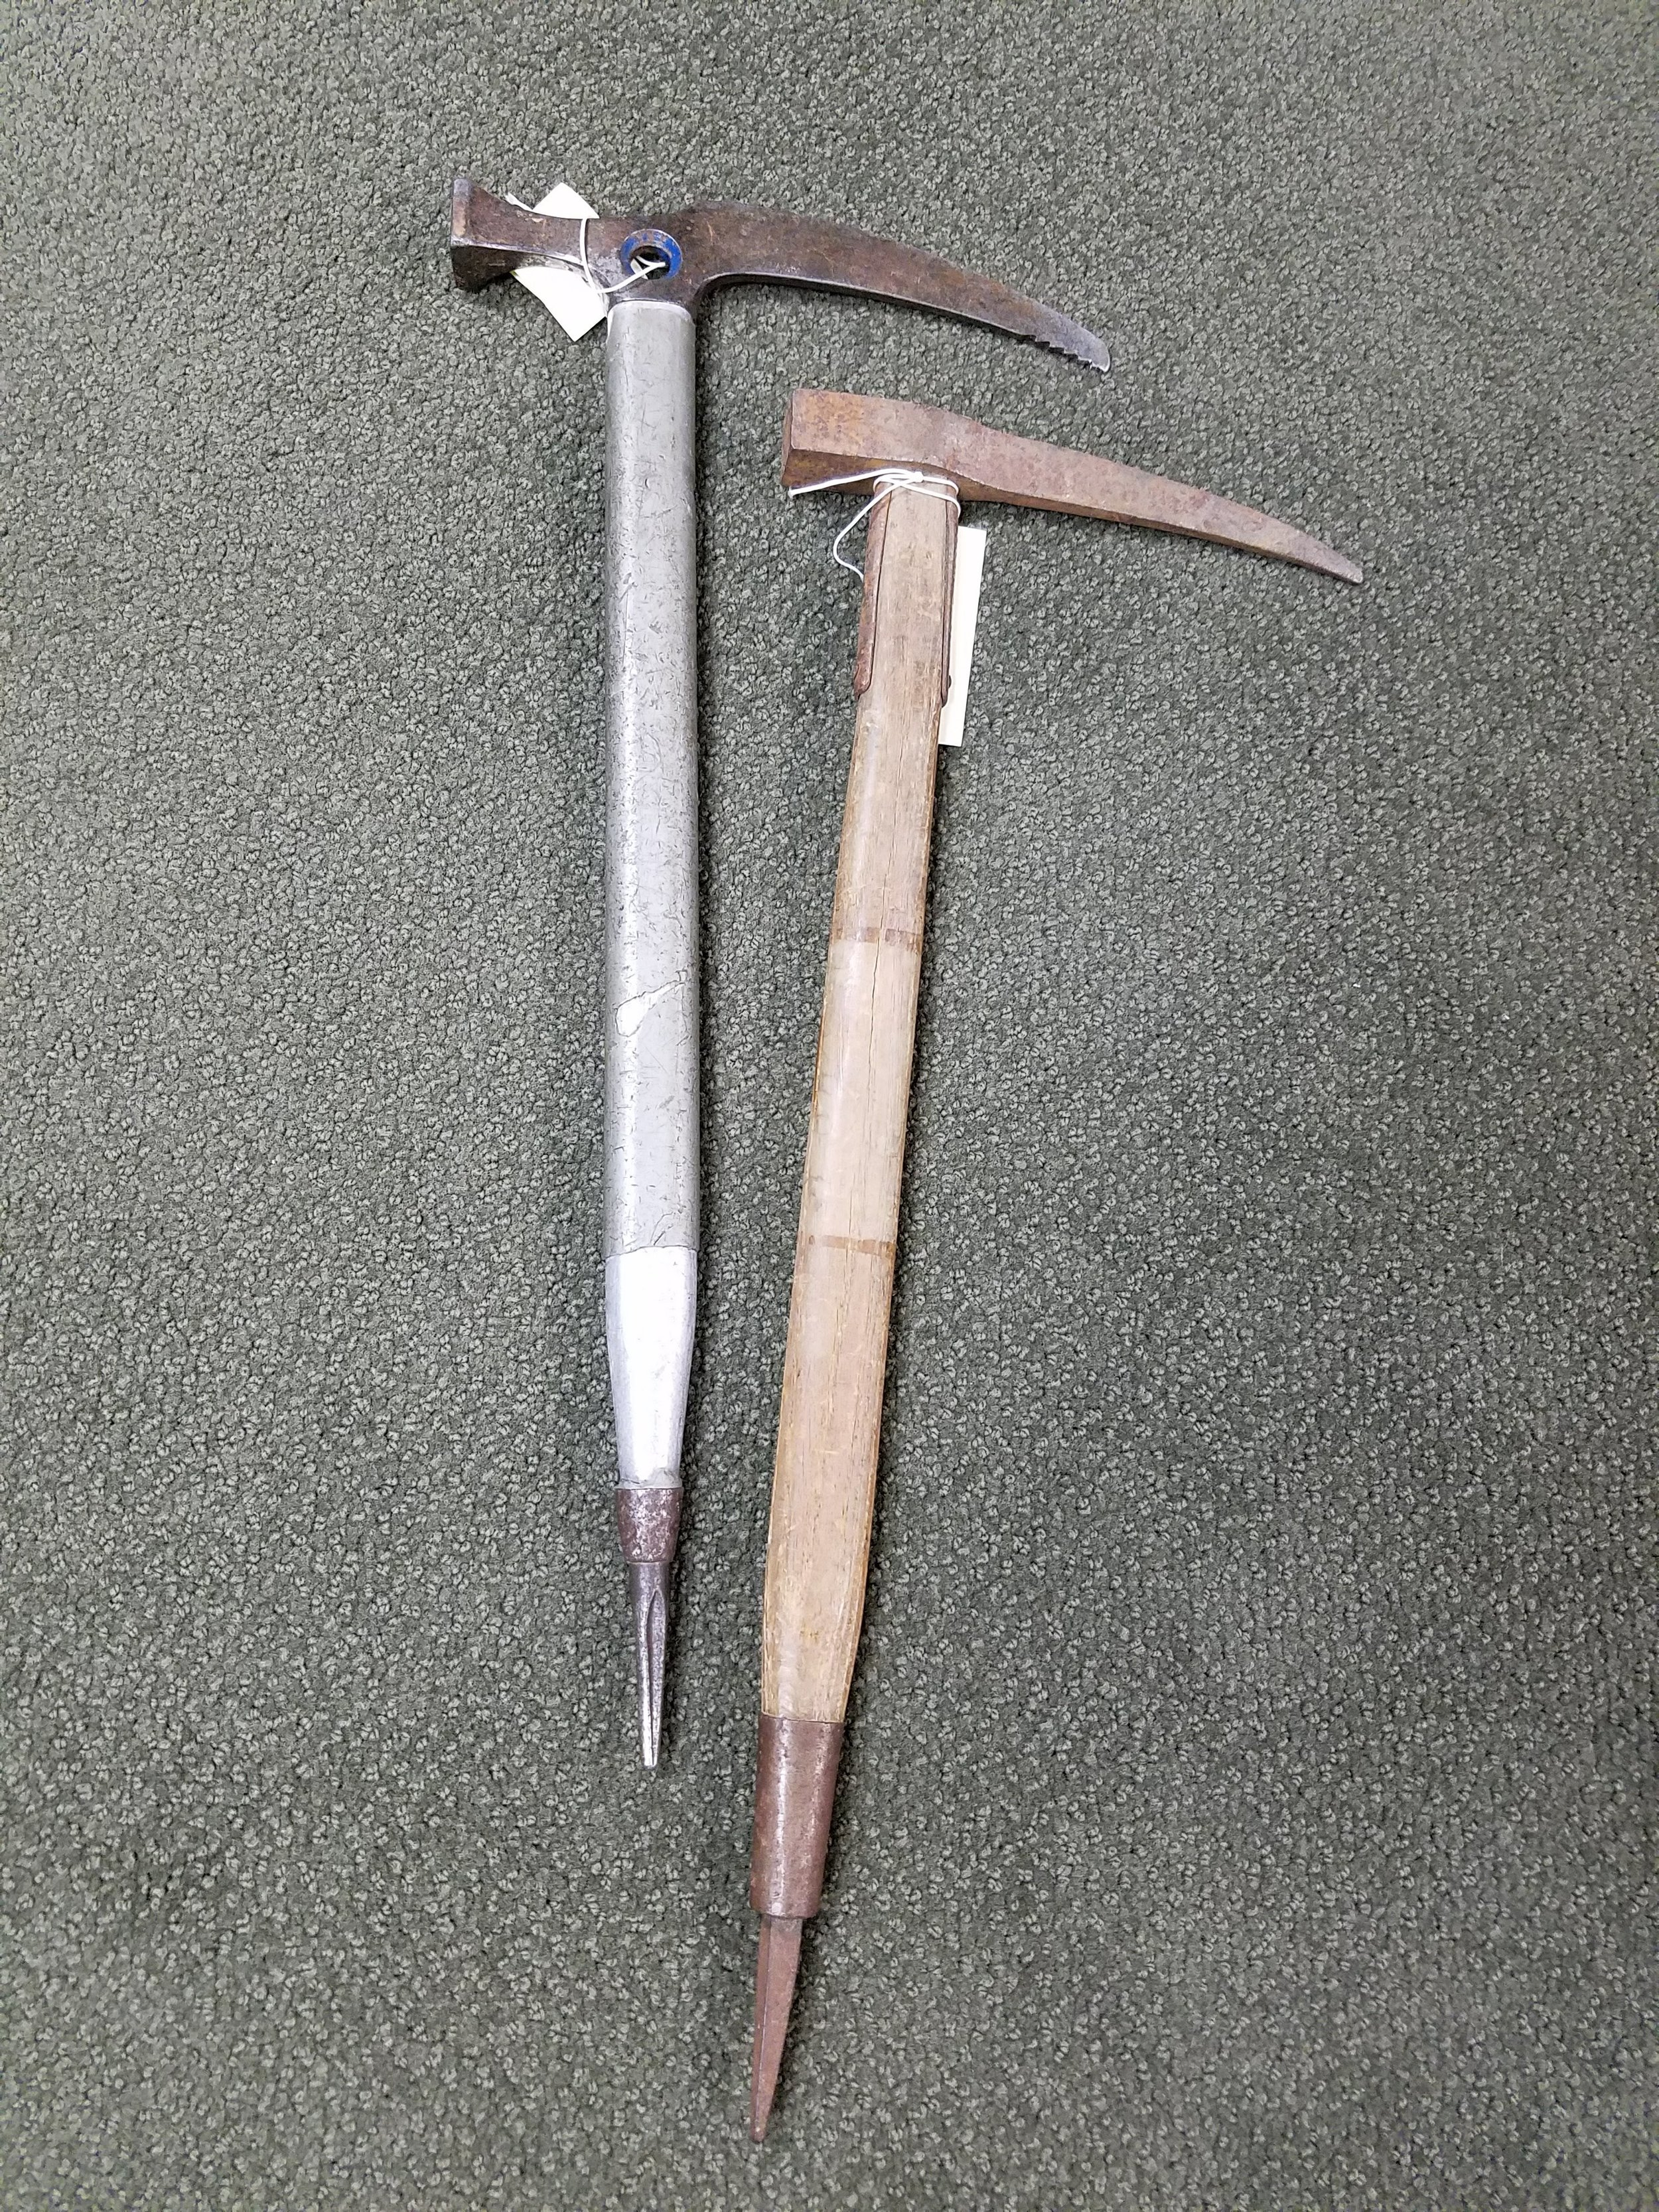 All-metal ice axes with hammers instead of adzes